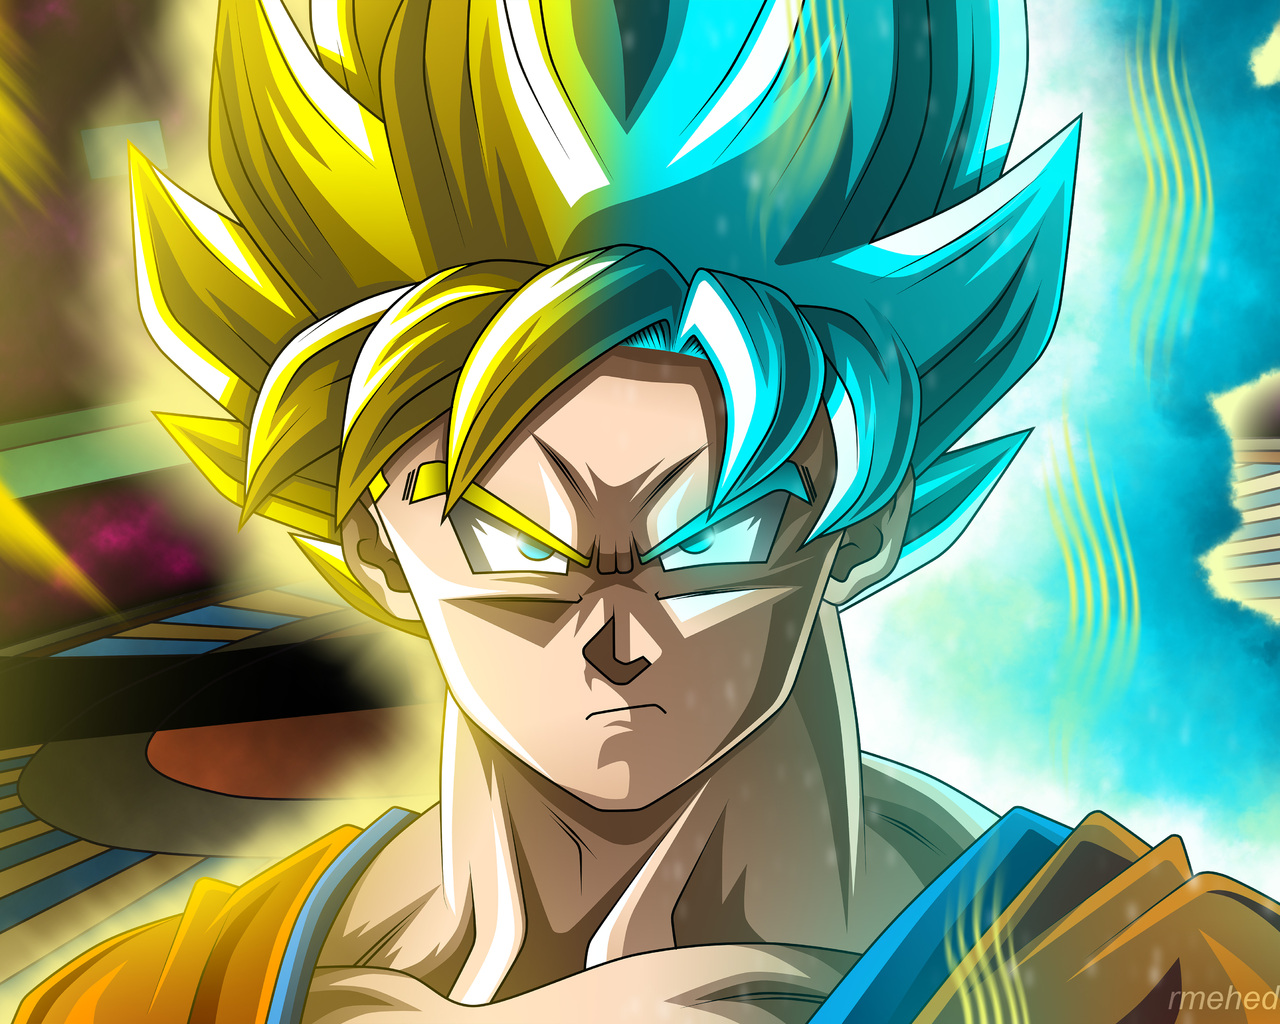 1280x1024 Dragon Ball Super Goku Hd 1280x1024 Resolution Hd 4k Wallpapers Images Backgrounds Photos And Pictures